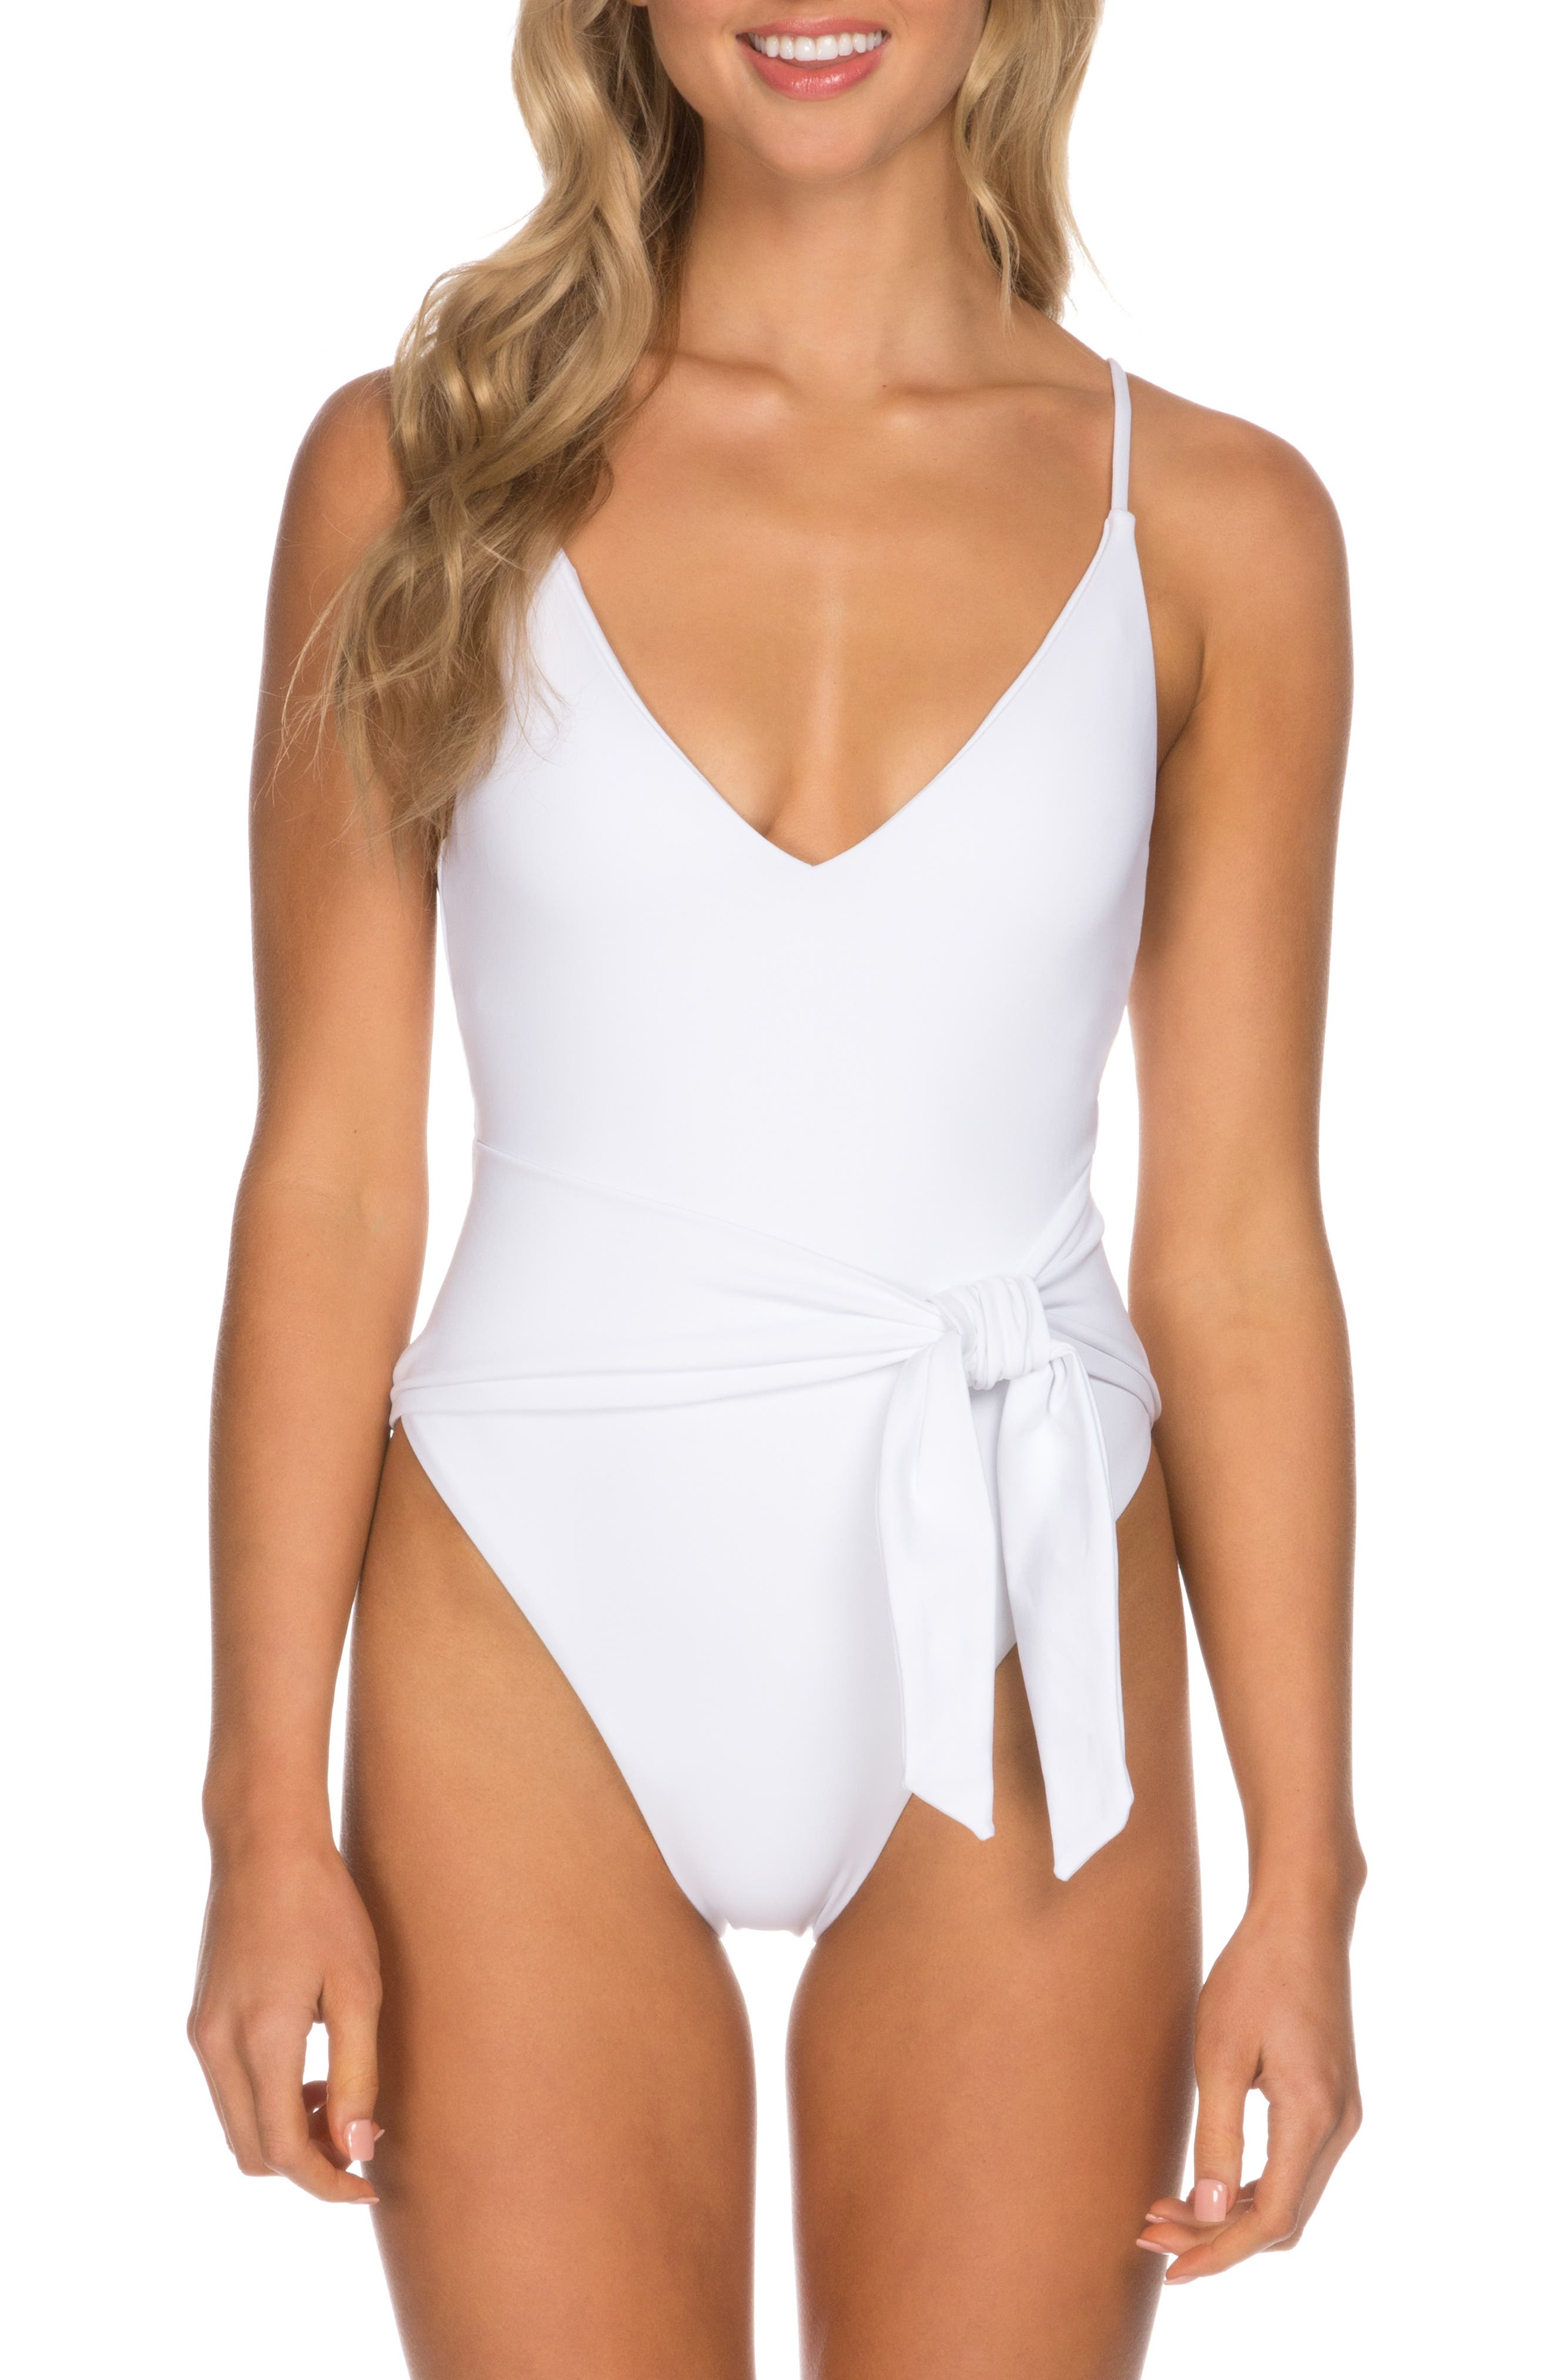 Isabella Rose Double Take One-Piece Swimsuit